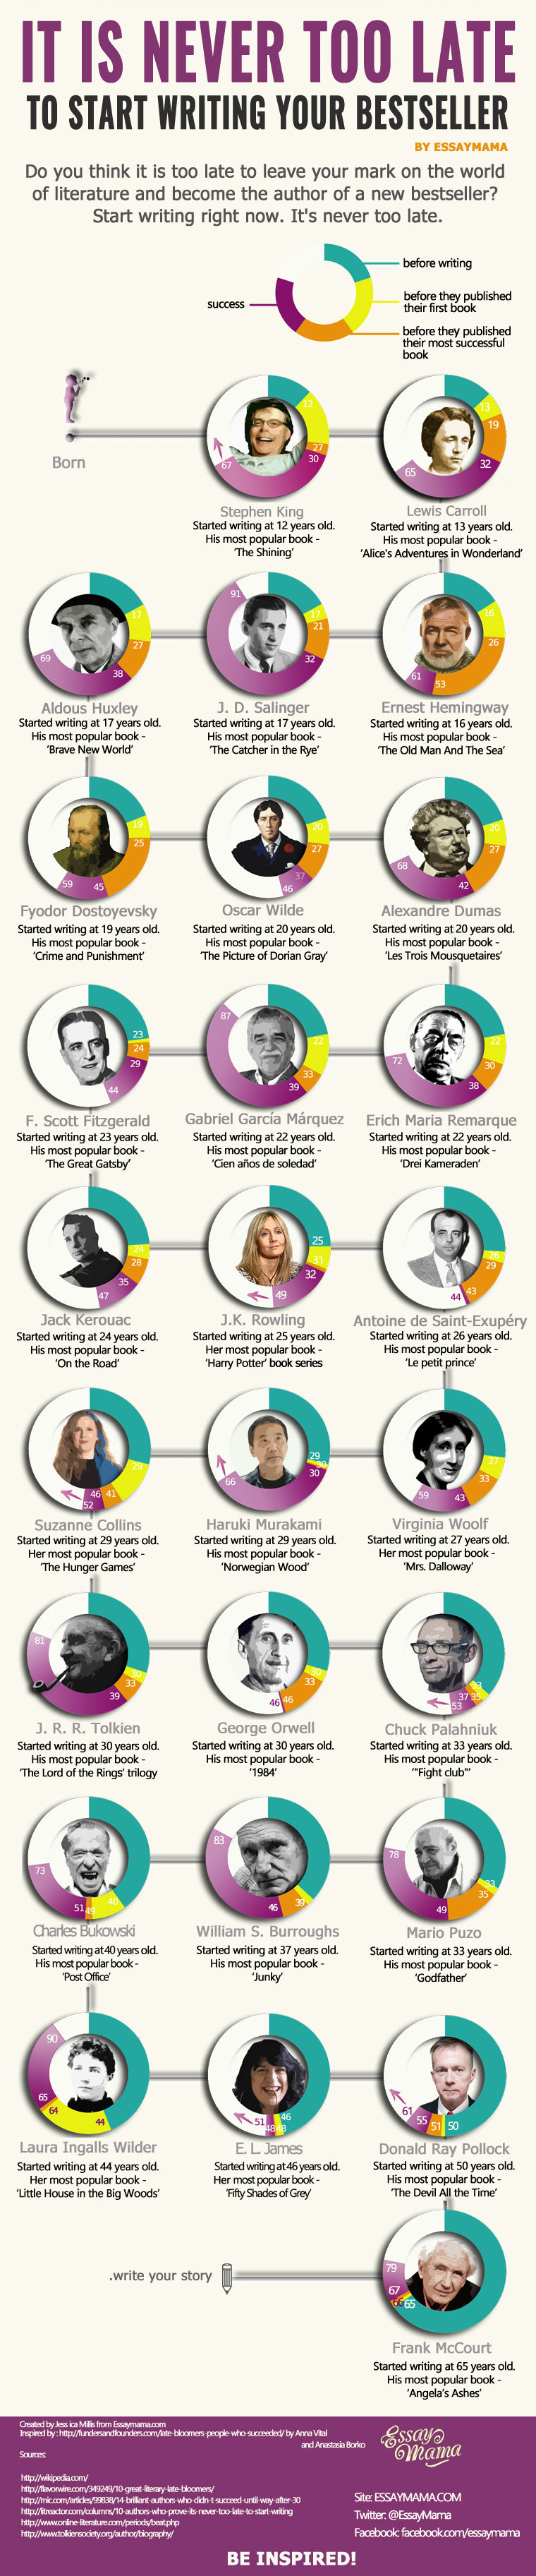 Never Too Late To Start Writing Your Bestseller [Infographic]